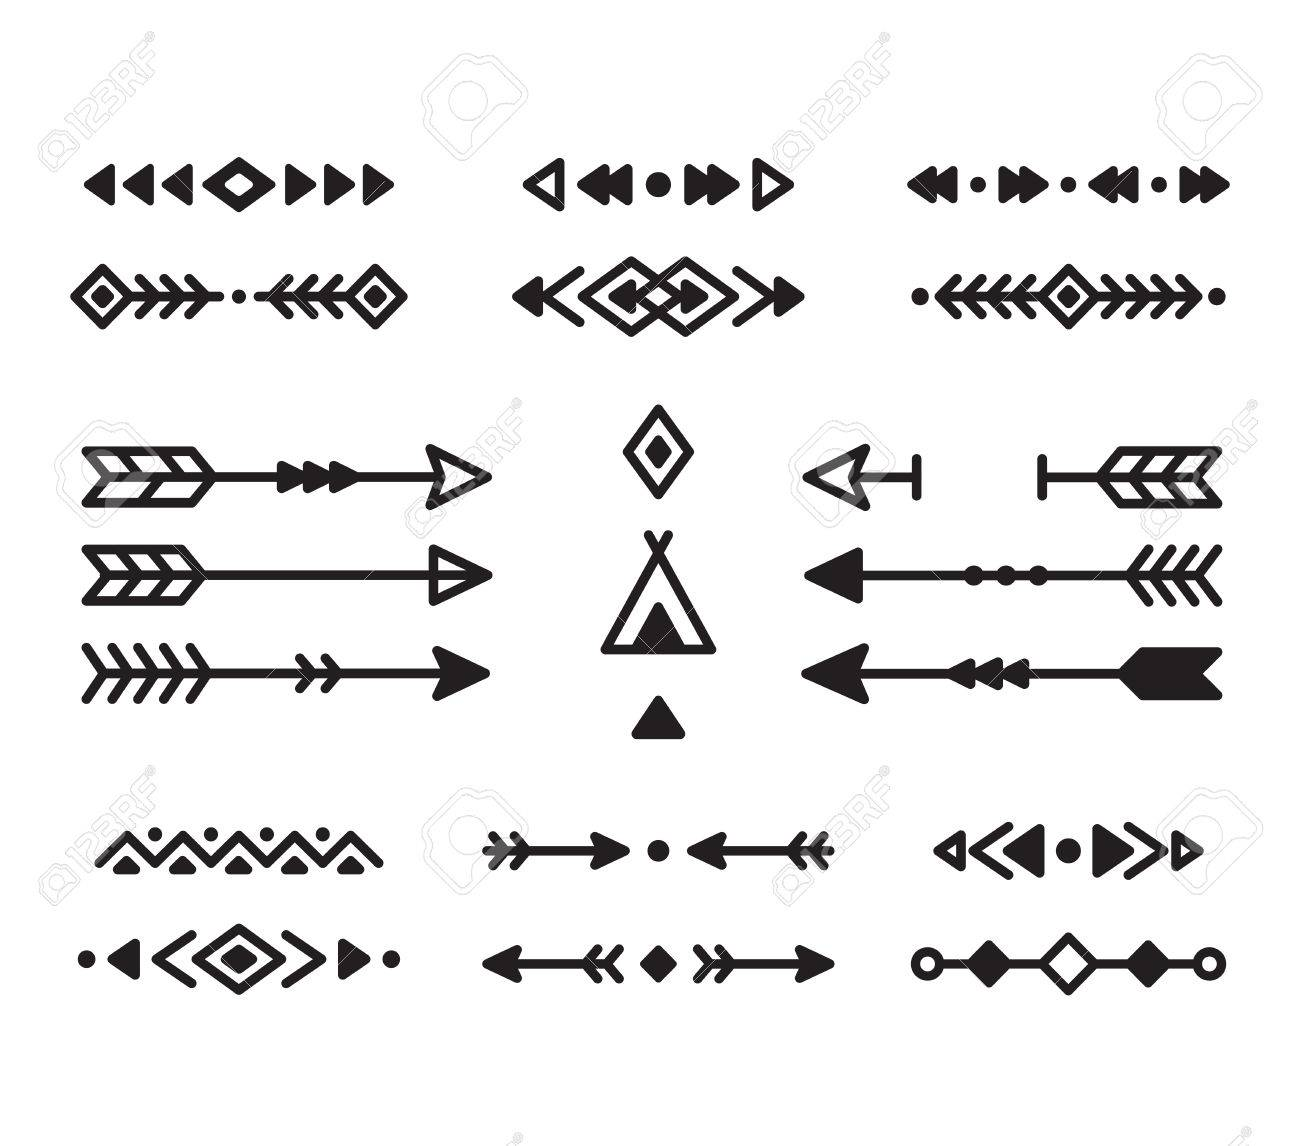 Navajo indian symbols gallery symbol and sign ideas american indian designs and symbols printable clipart library native american indian design elements set borders arrows biocorpaavc Images